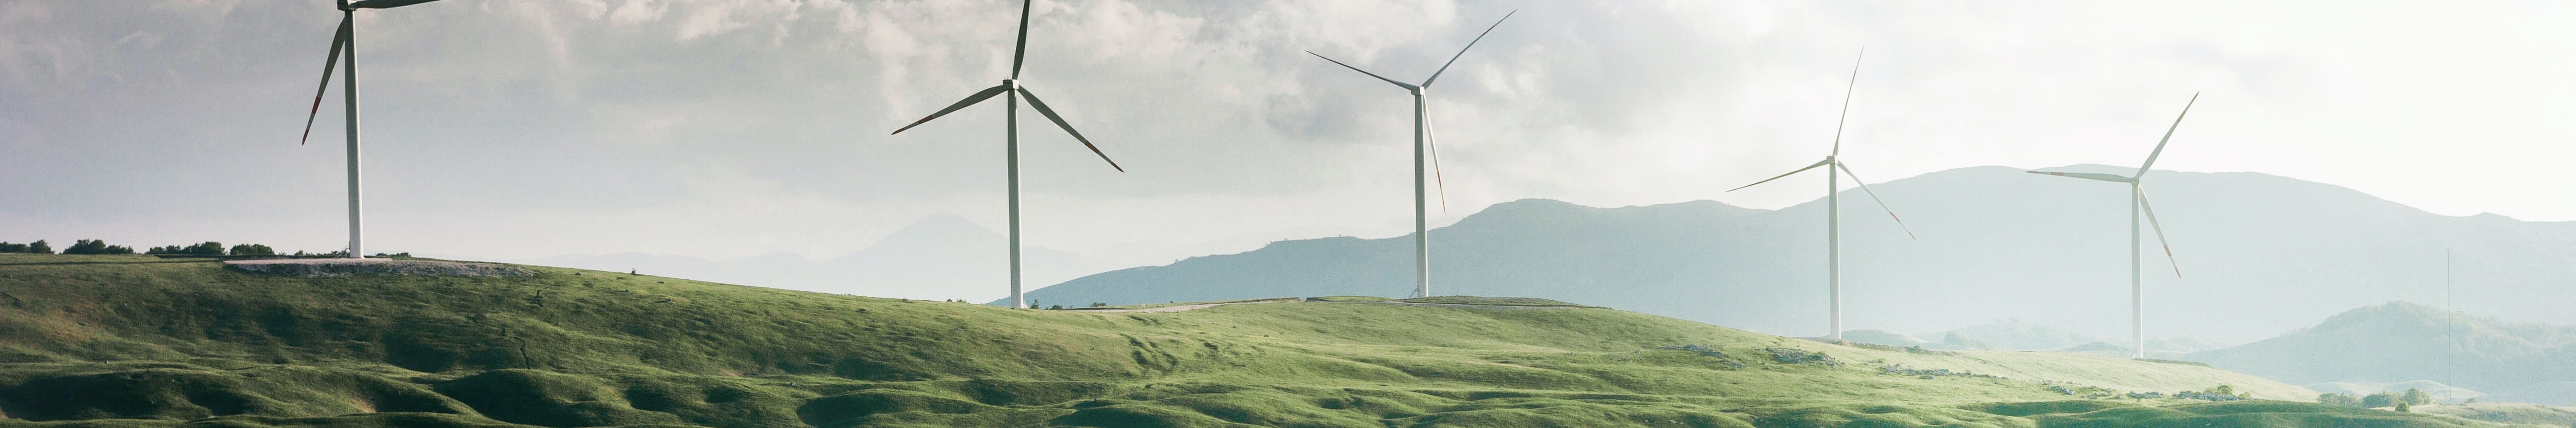 Intesa Sanpaolo loaned about US$586.5million to renewable energy projects since 2017